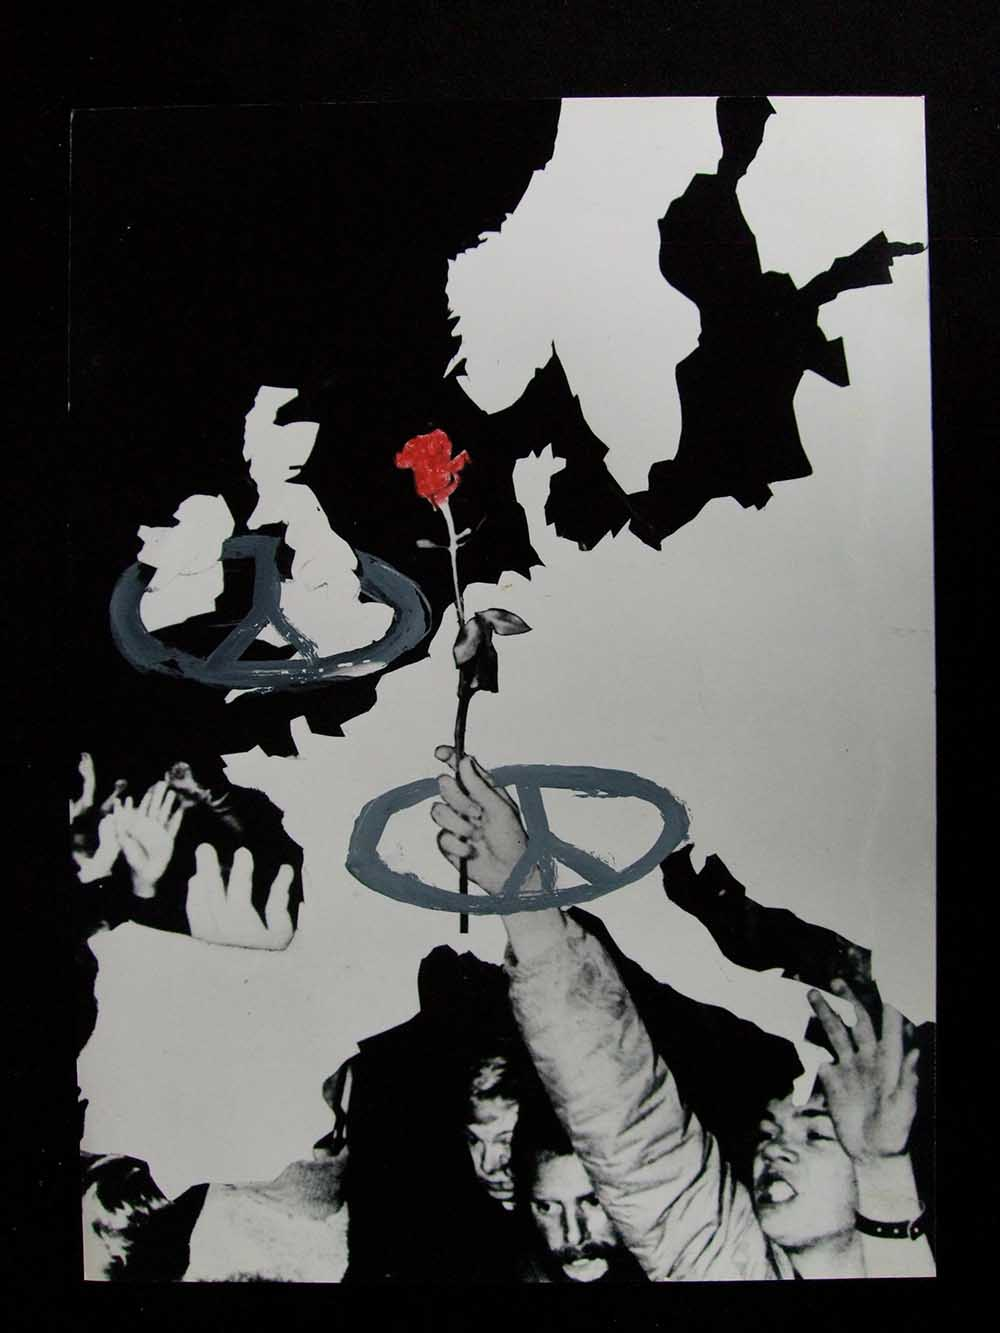 European Nuclear Disarmament(END) (rough) - PhotomontageGelatin silver prints, inkand gouache on card1983First published: Poster forEuropean NuclearDisarmament (END) (rough)